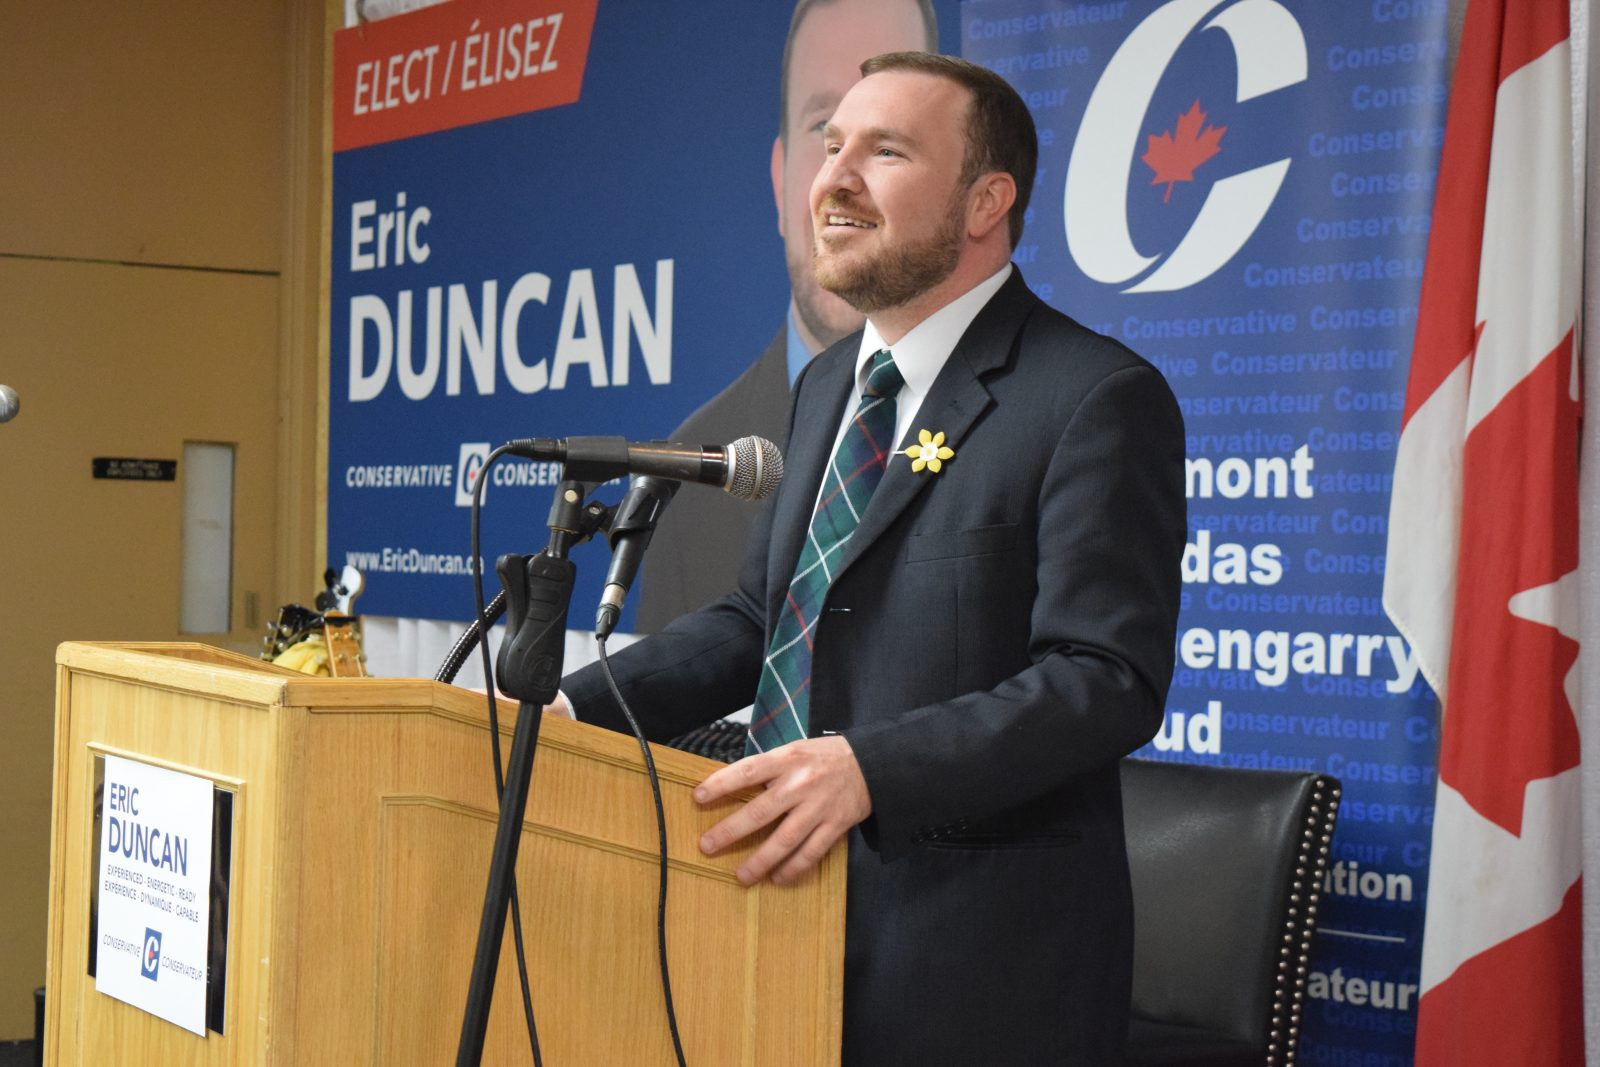 Duncan re-nominated as CPC candidate for next election